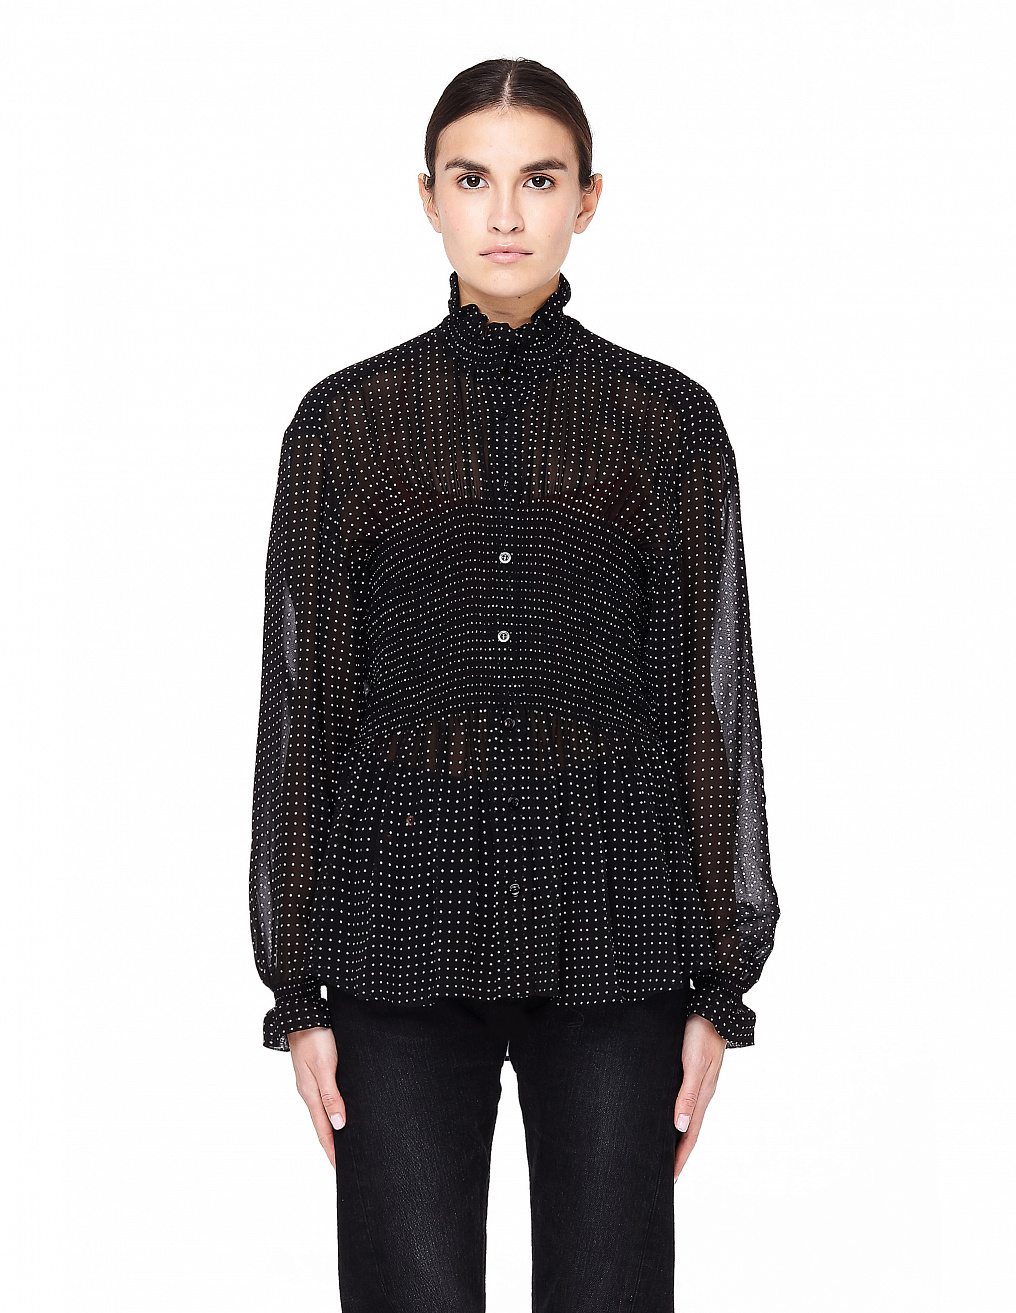 Navy Blue Polka-Dot Blouse Balenciaga - buy